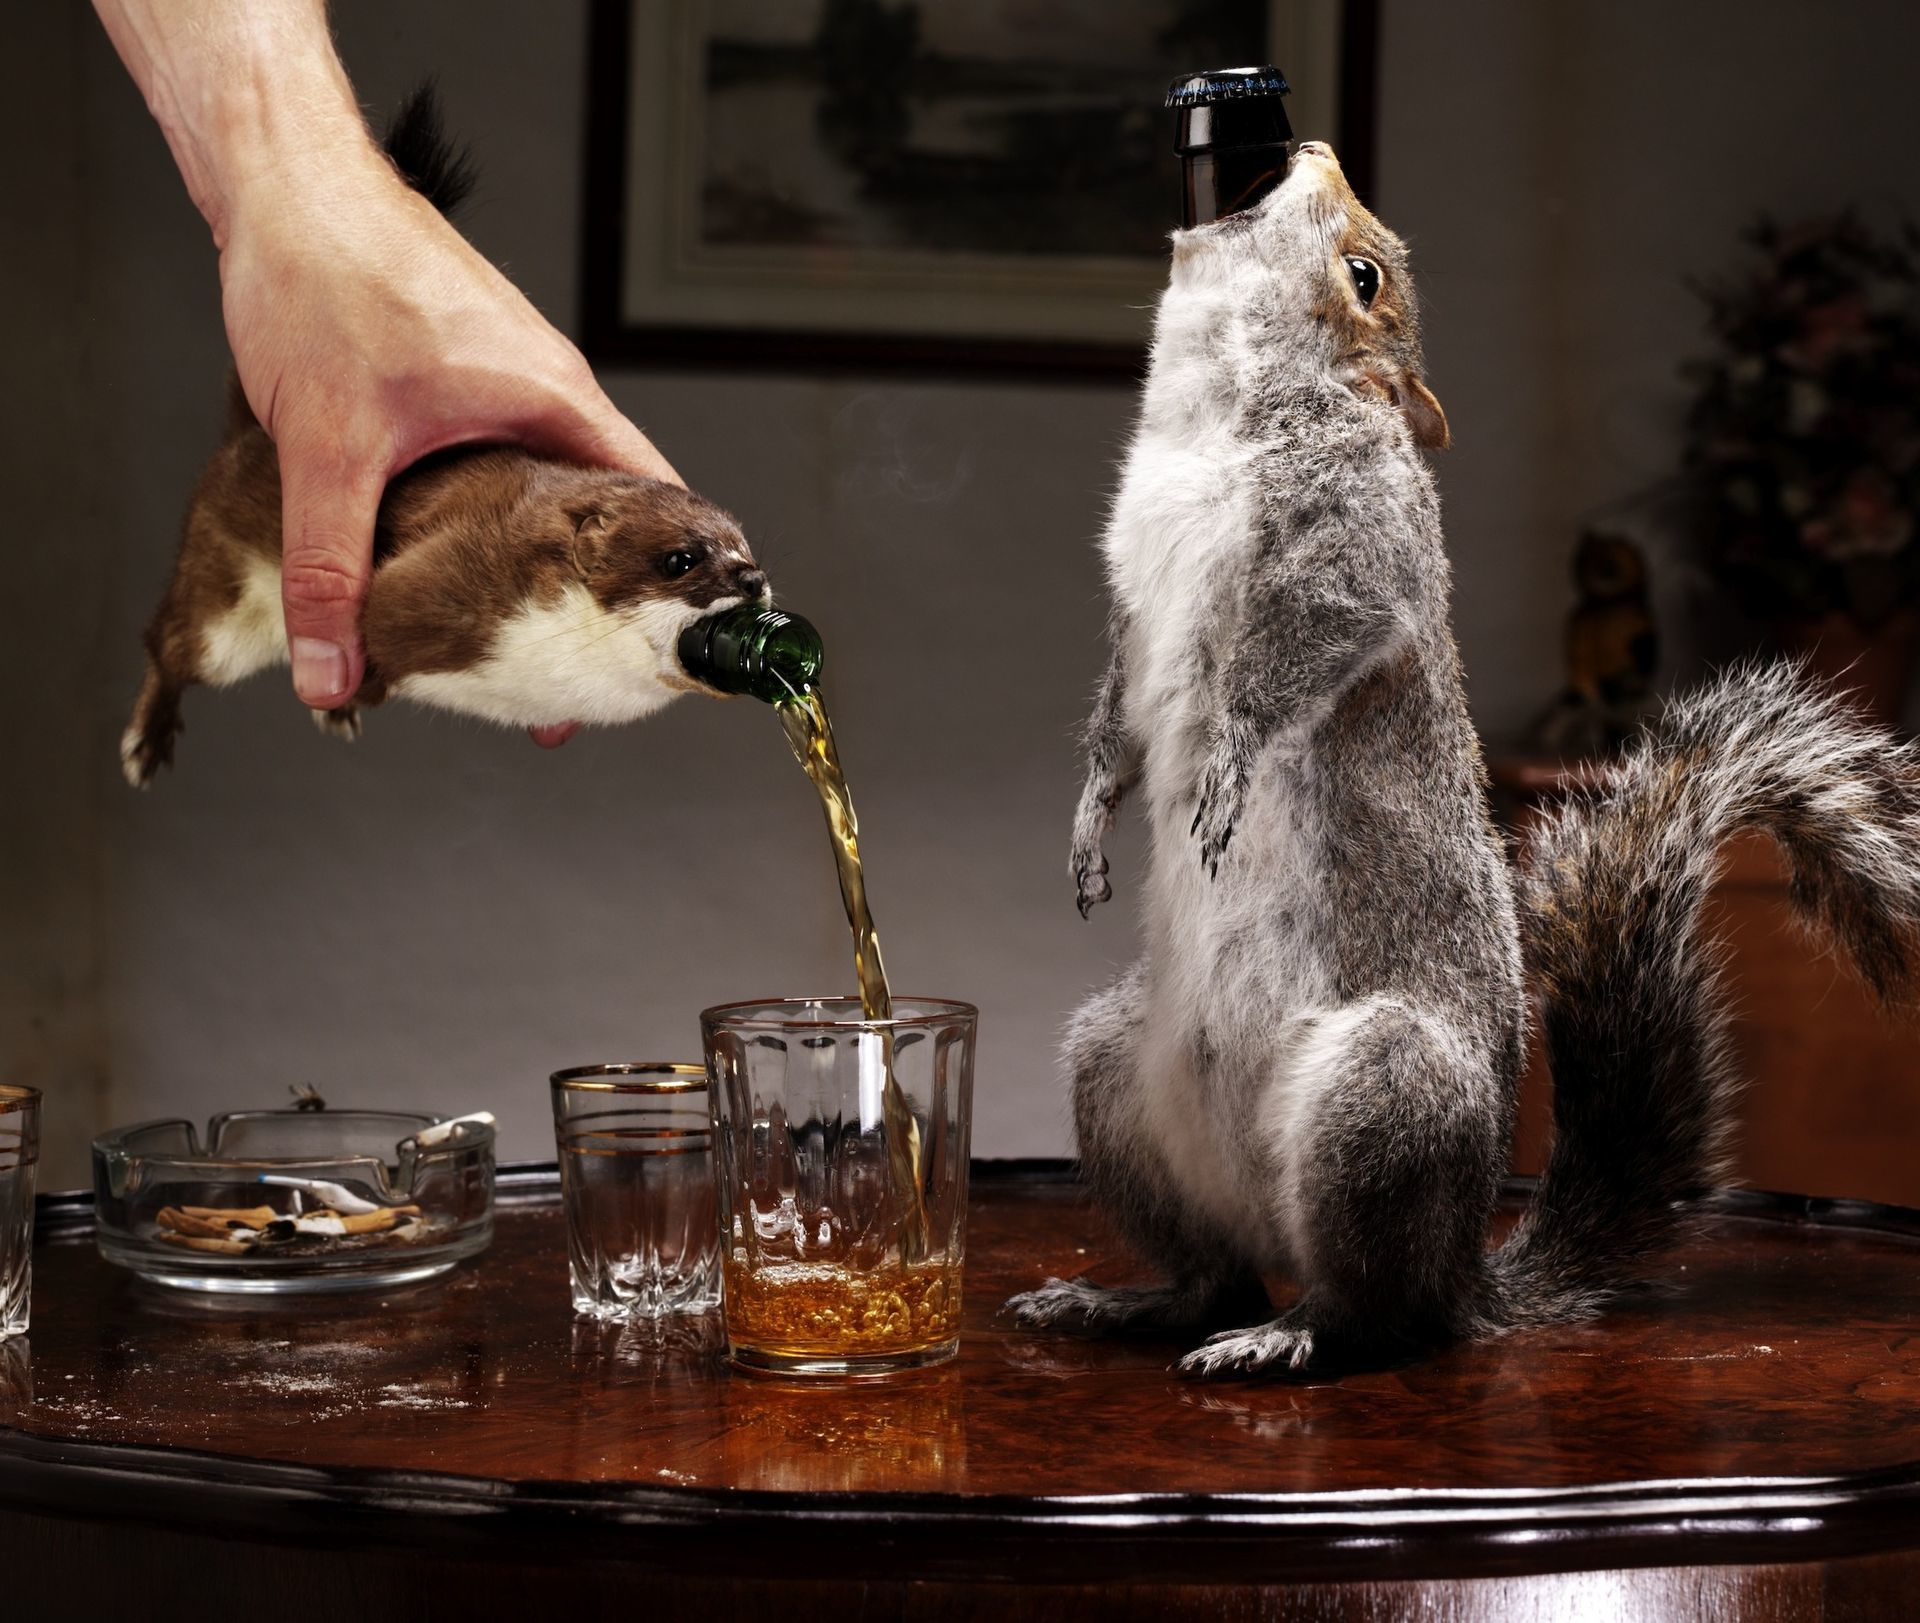 Limited edition, 55 percent ABV concoction, contained within taxidermy squirrels, to be made available exclusively for Equity for Punks USA investors